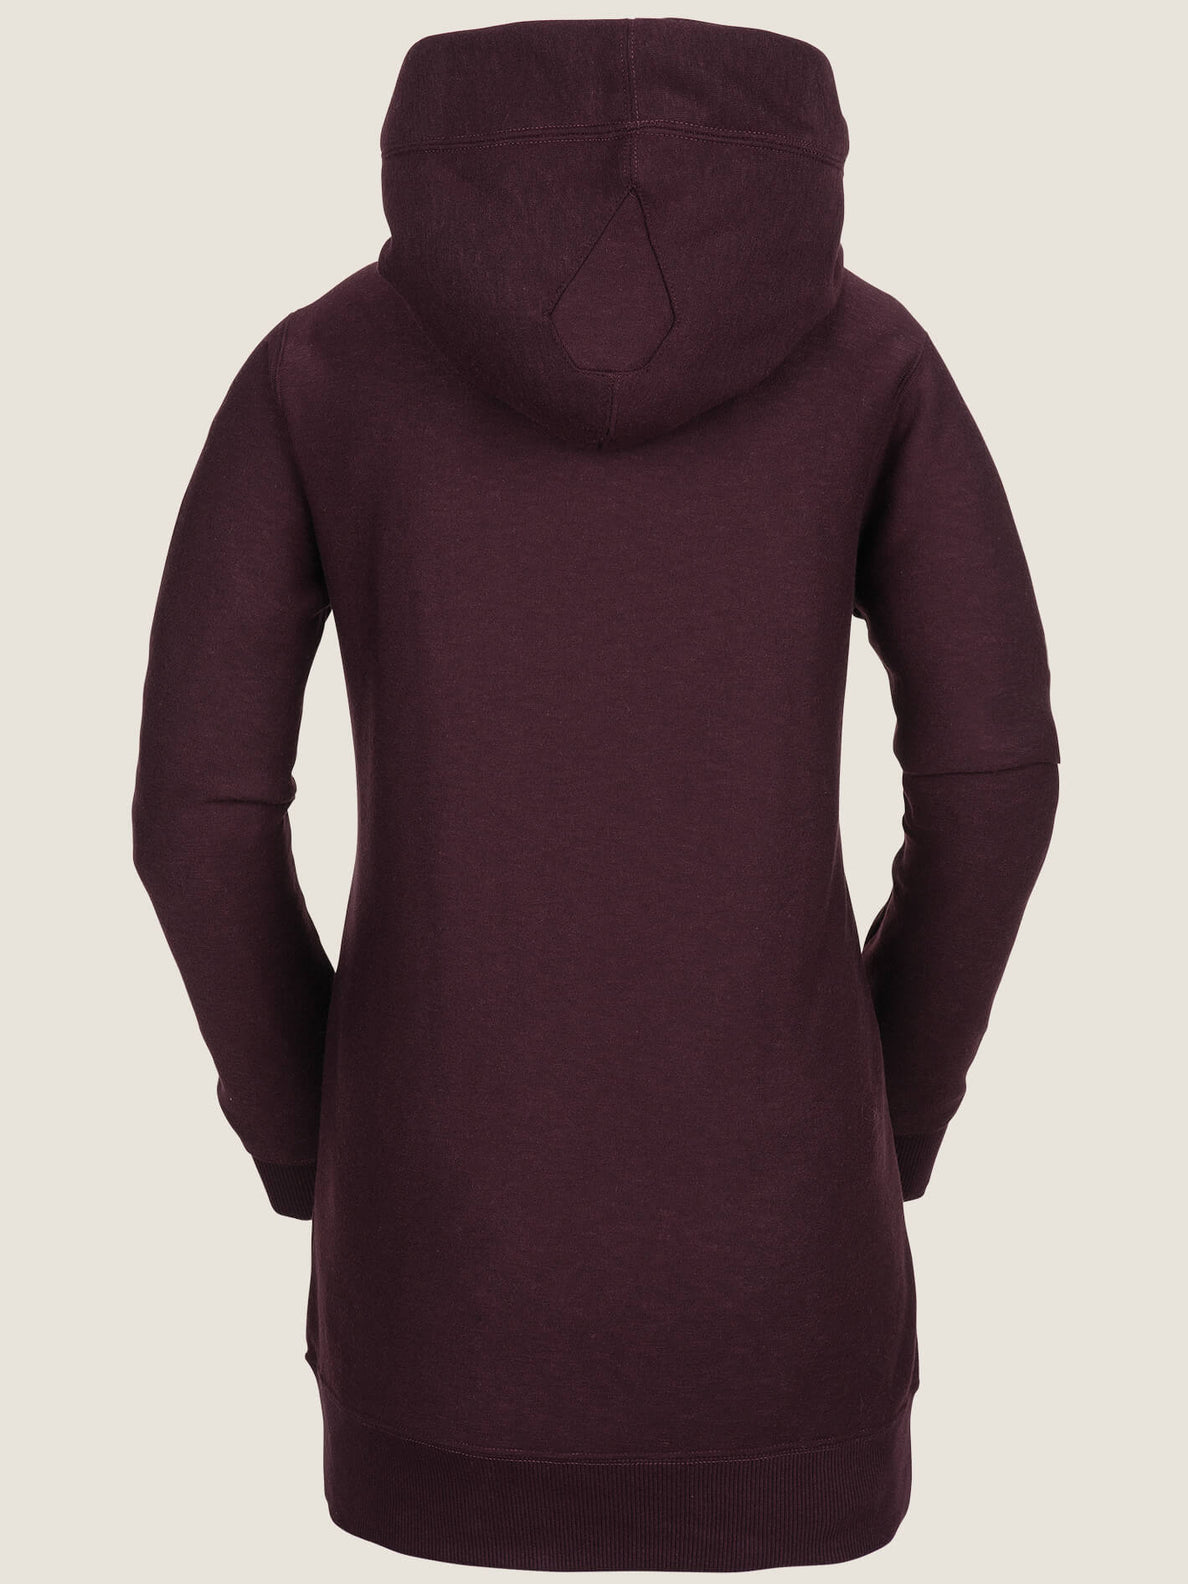 Riding Hoodie In Merlot, Back View